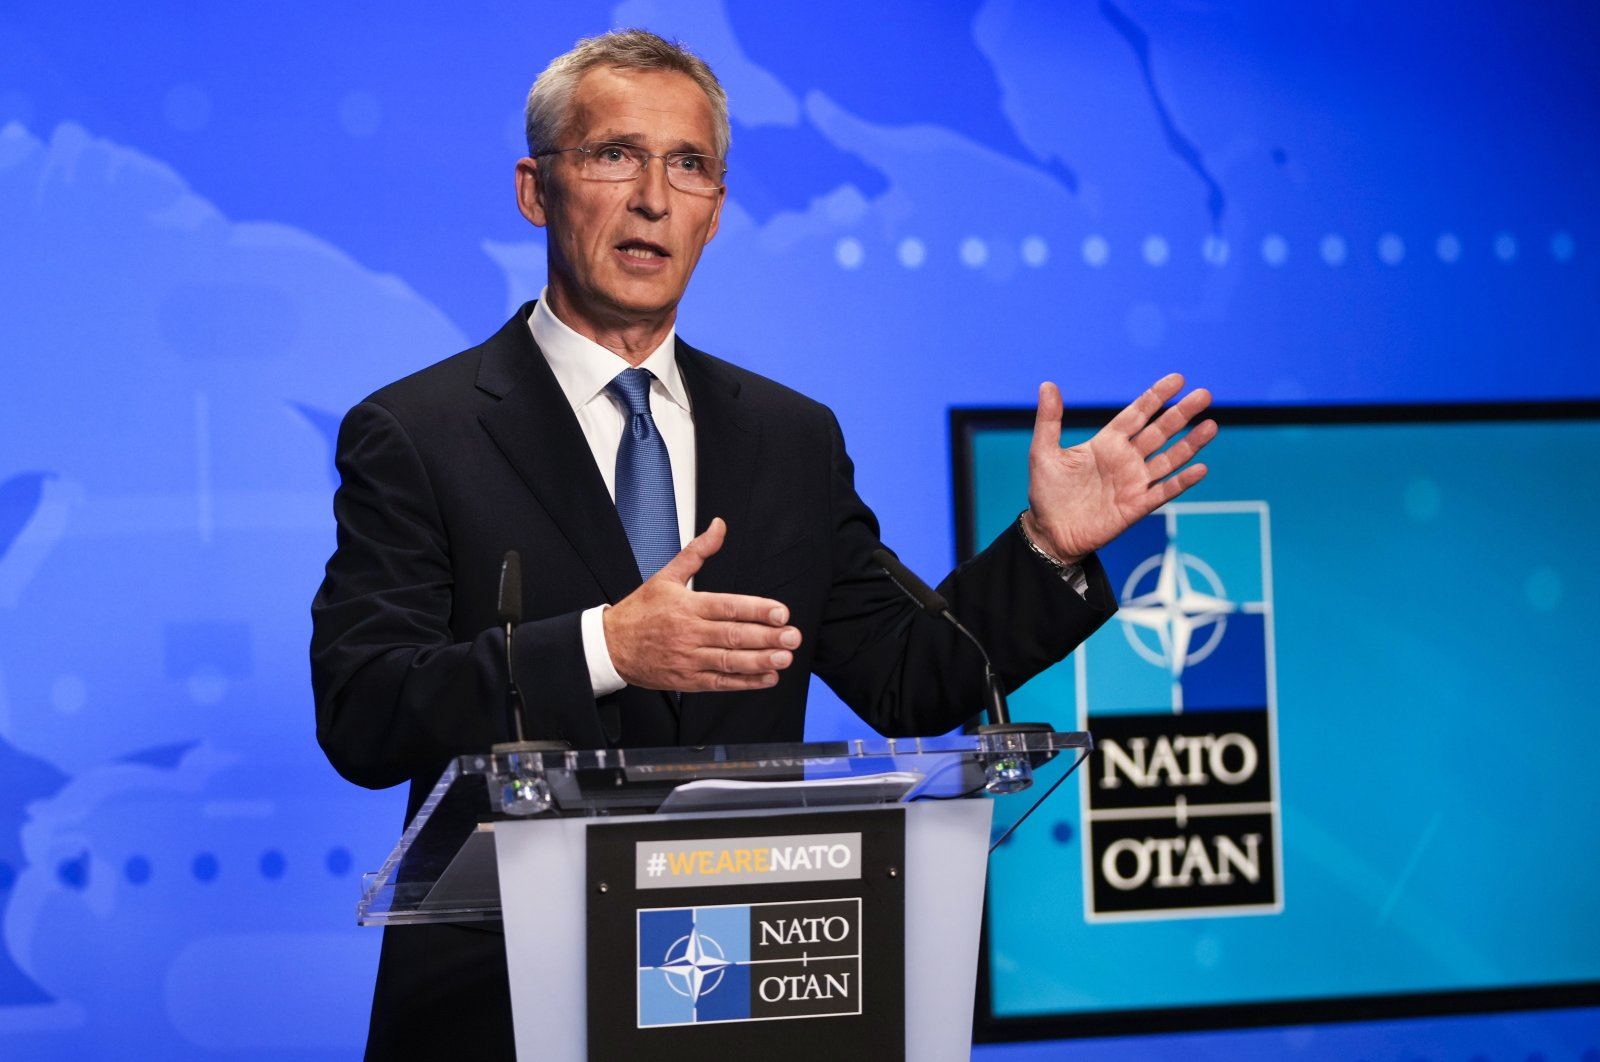 NATO Secretary-General Jens Stoltenberg gestures during an online news conference following a NATO Foreign Ministers video meeting following developments in Afghanistan at the NATO headquarters in Brussels, Belgium, 20 August 2021.  EPA/FRANCISCO SECO / POOL